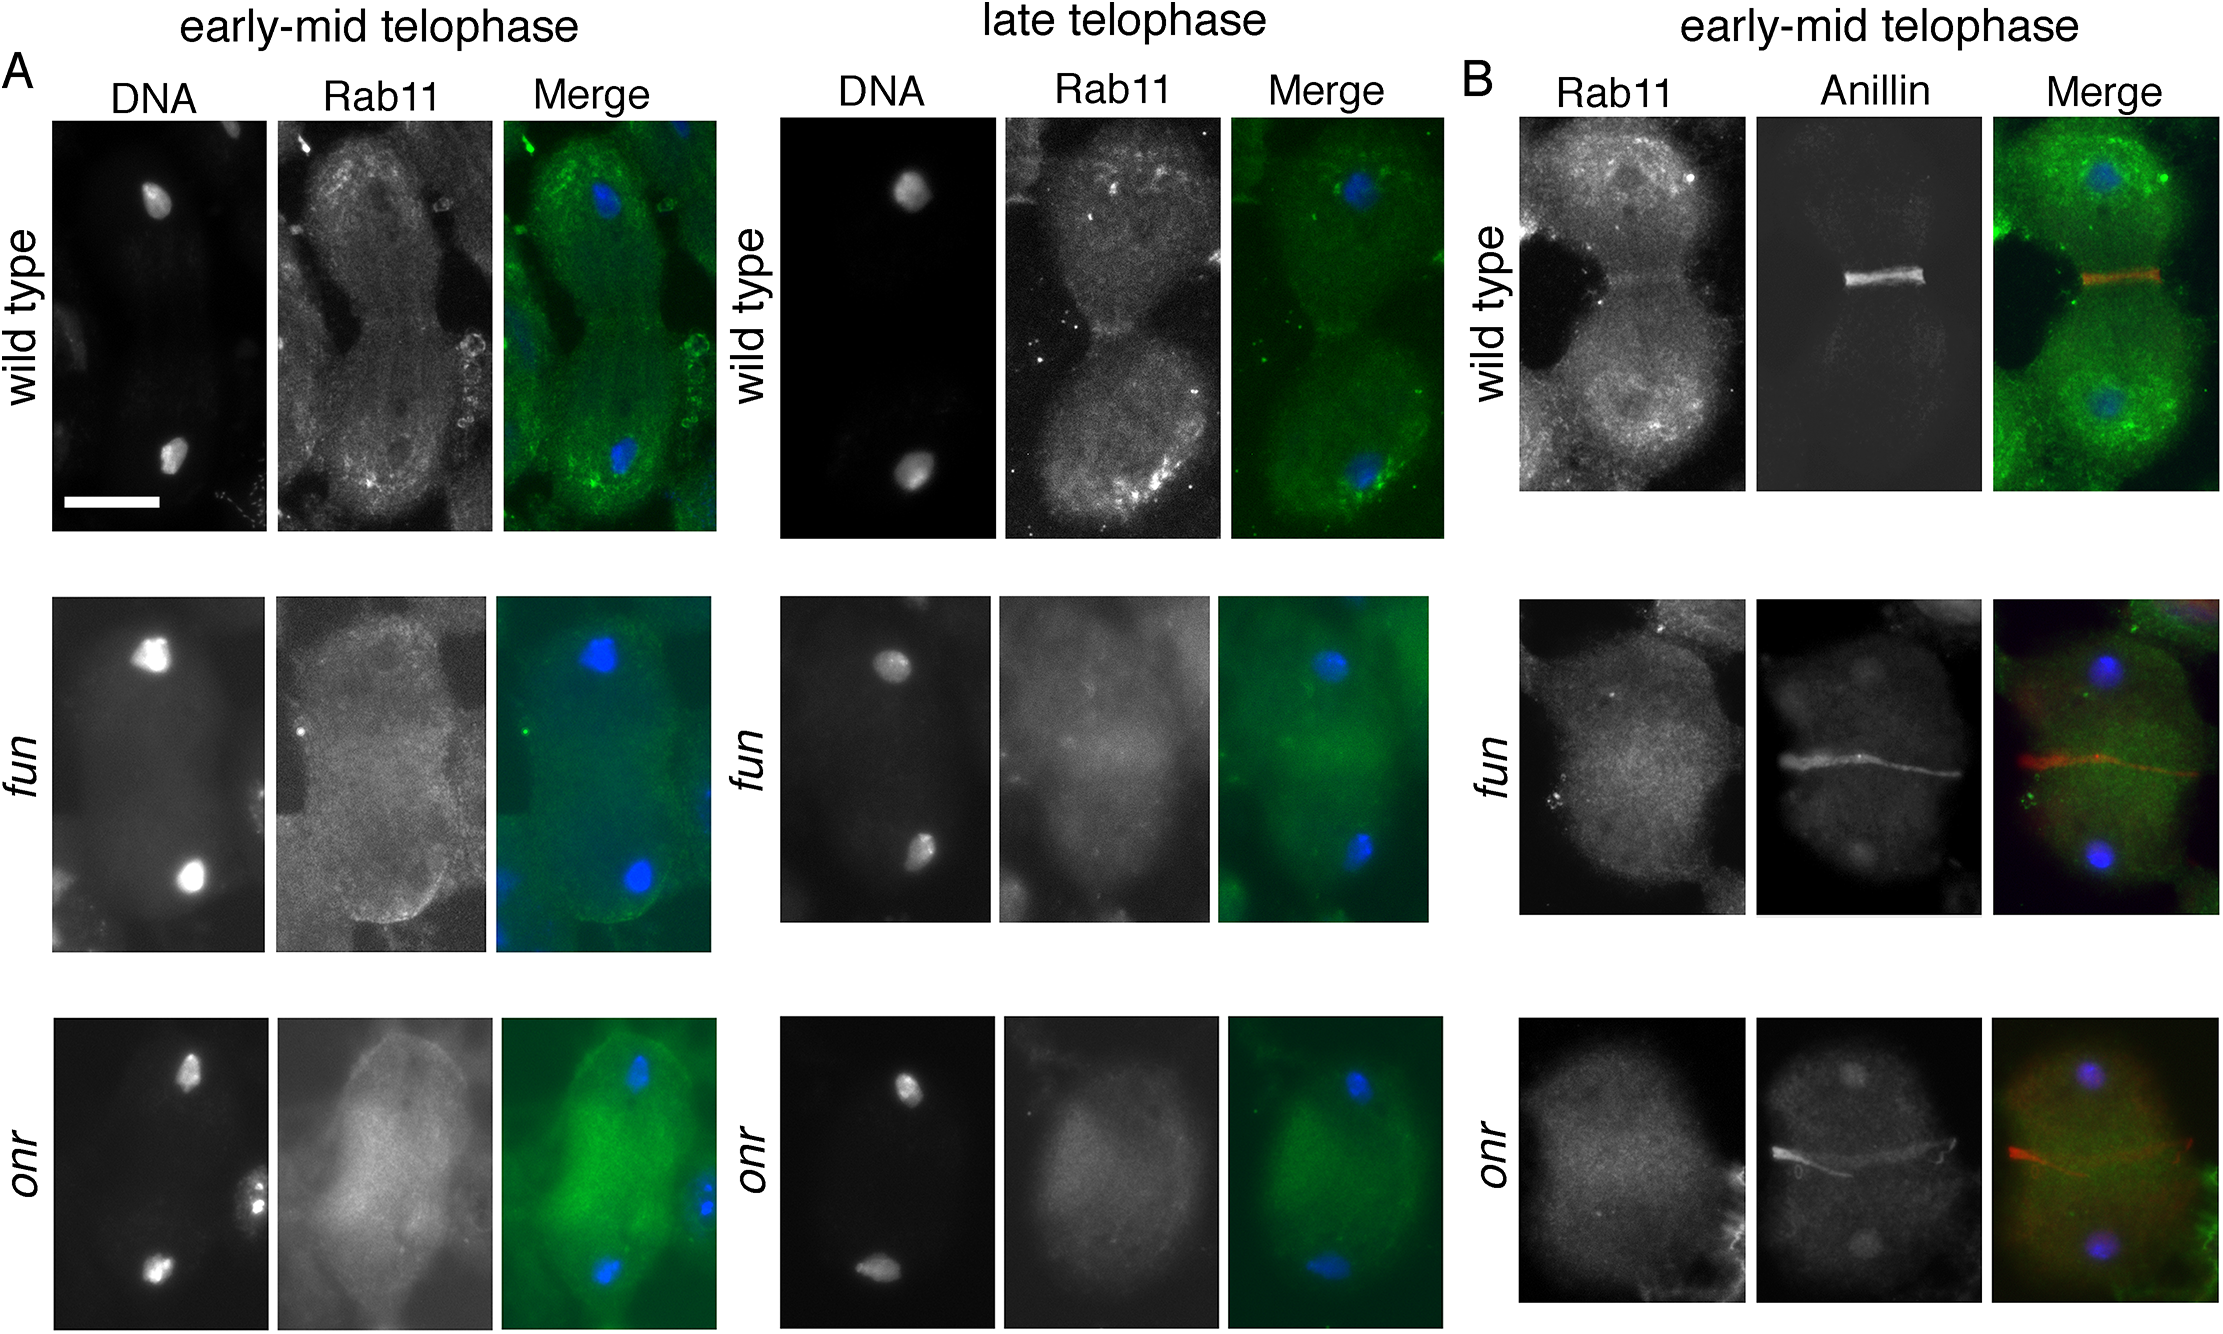 <i>onr and fun mutations</i> disrupt localization of Rab11 protein in dividing spermatocytes.